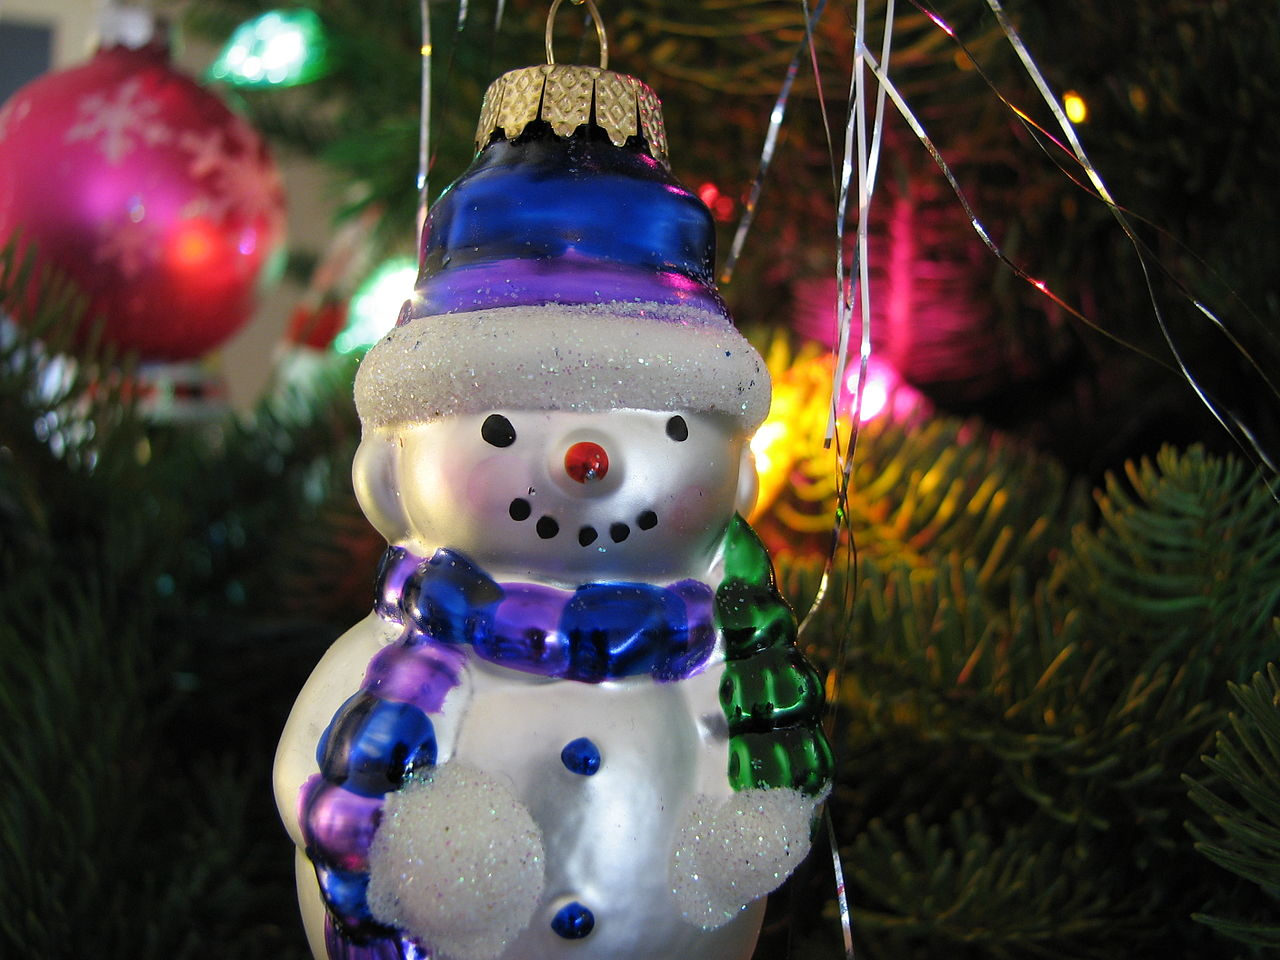 filechristmas ornament snowman lightsjpg